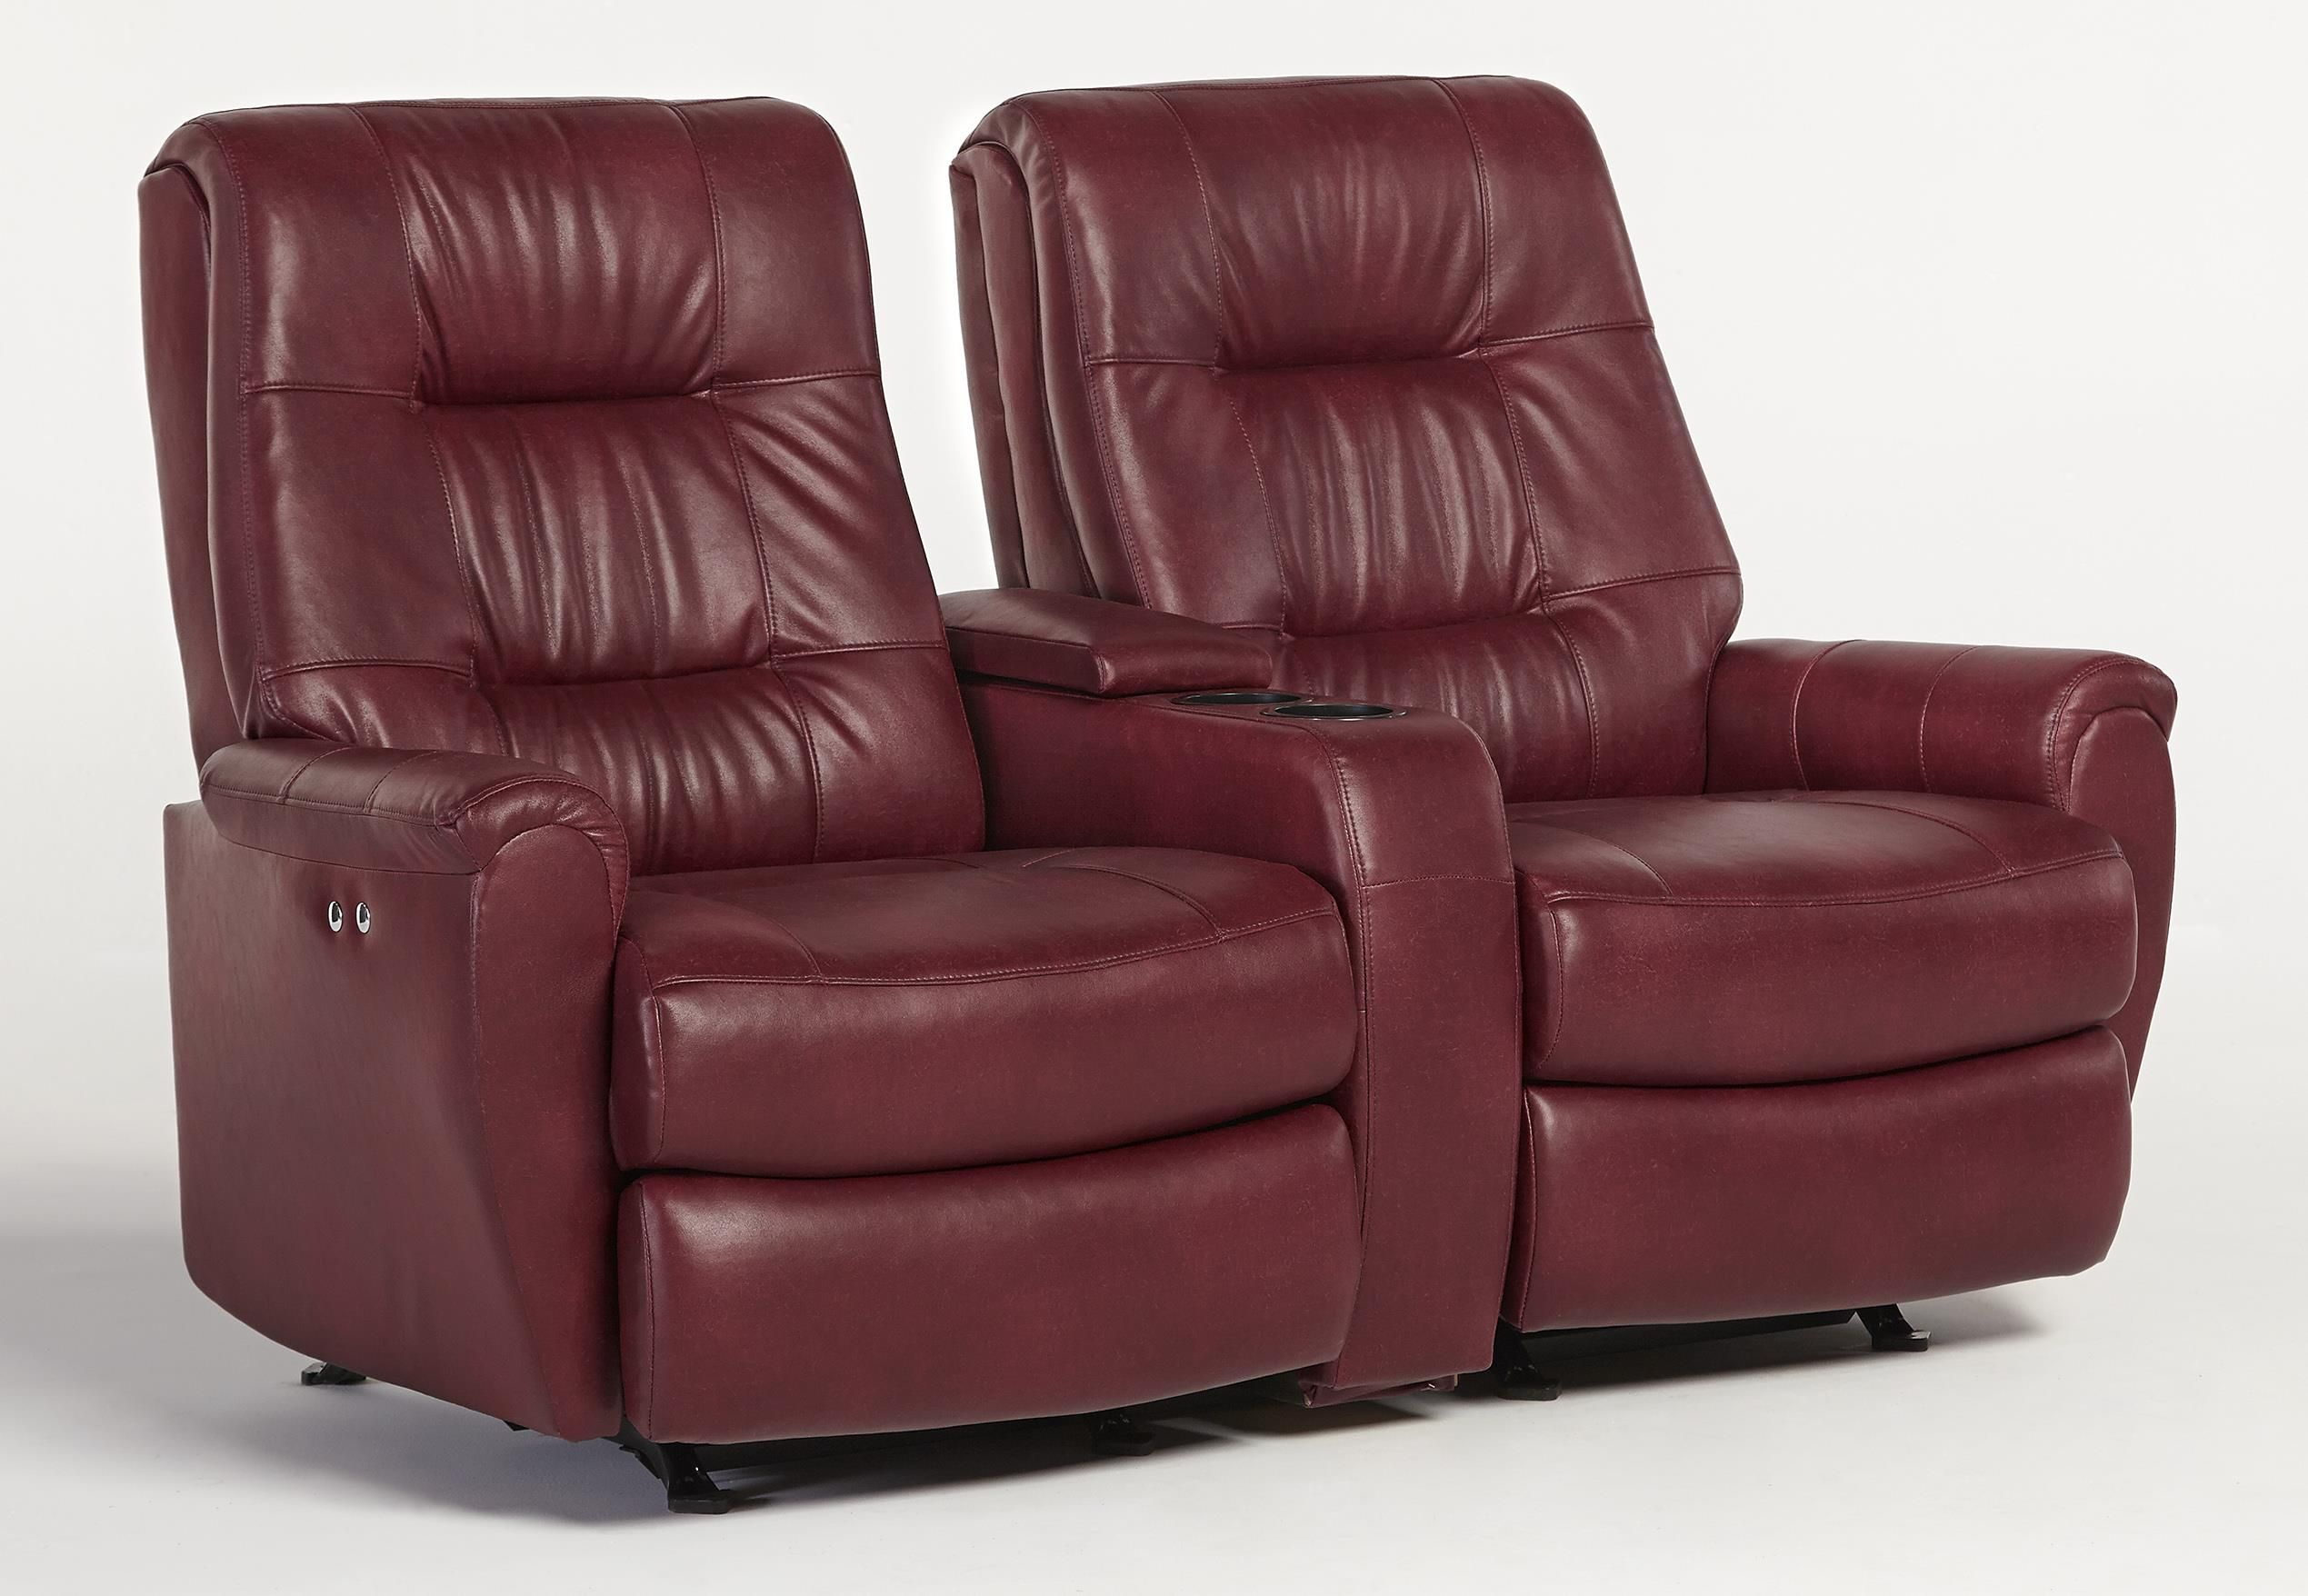 Recliner+Loveseats+for+Small+Spaces | Small-Scale Reclining Space Saver  Loveseat with Drink and Storage .